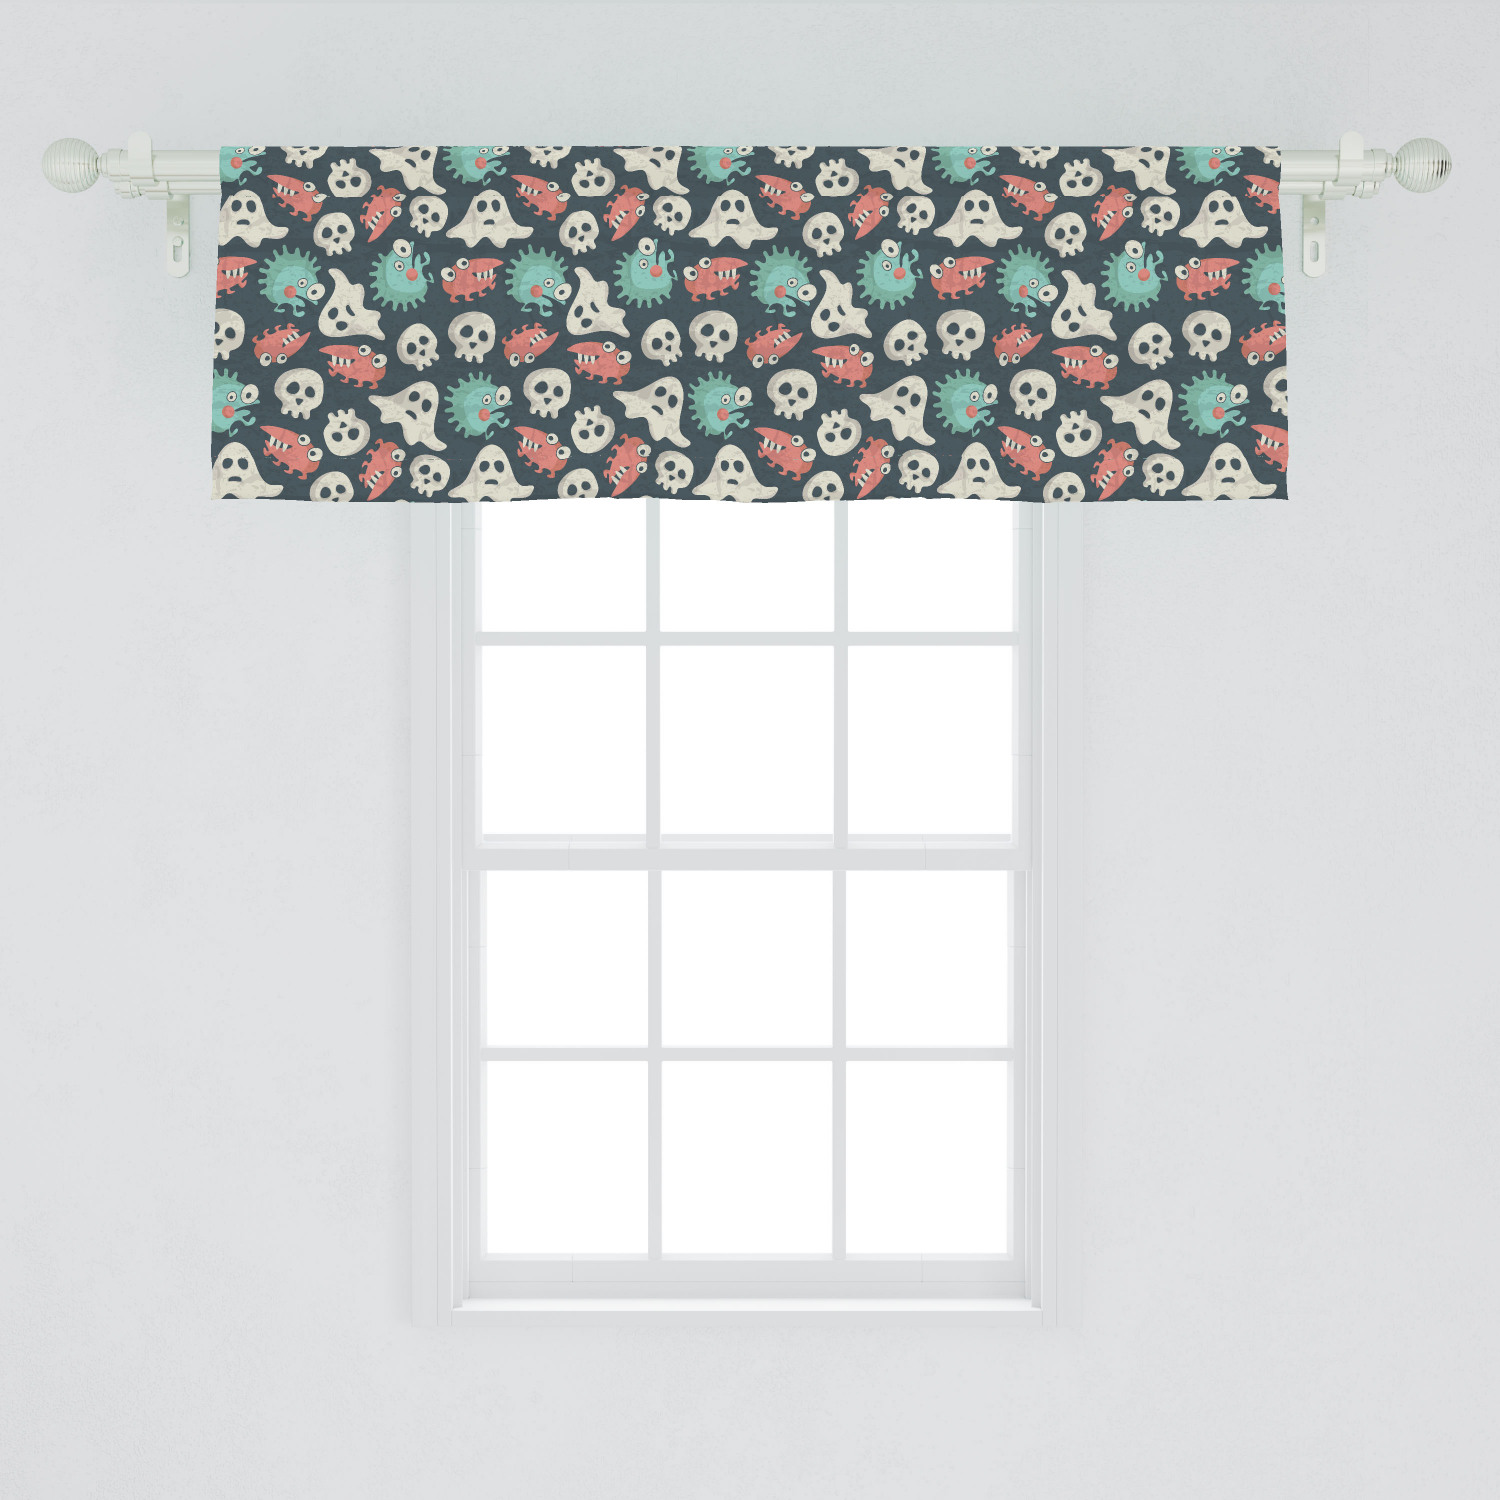 Ghost Window Valance Pattern With Spooky Weird Monsters Ghosts And Skulls Grunge Look In Muted Colors Curtain Valance For Kitchen Bedroom Decor With Rod Pocket By Ambesonne Walmart Com Walmart Com